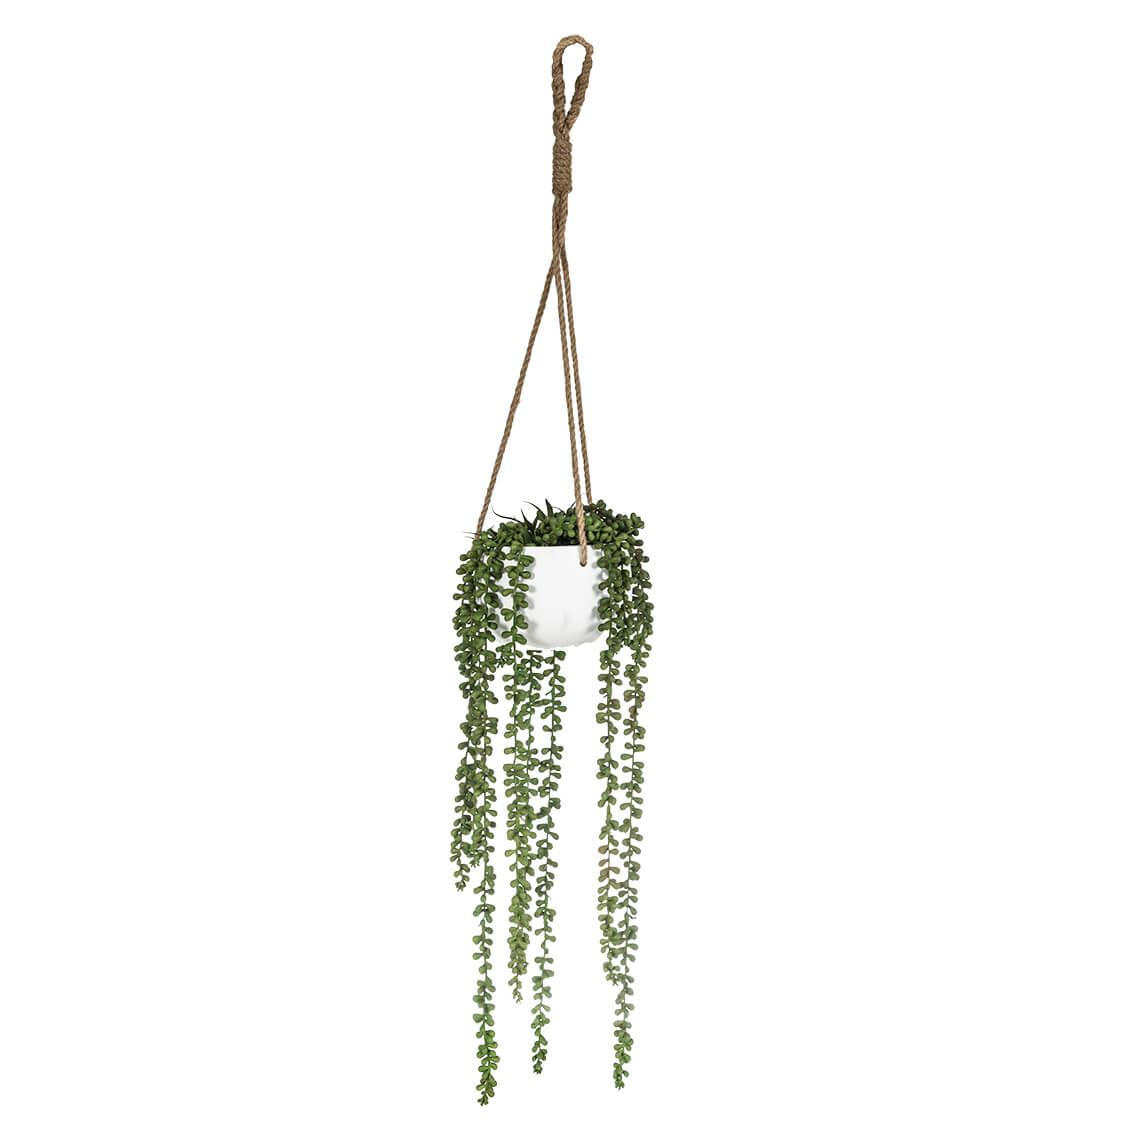 Hanging Pearls Ceramic Planter Size W 18cm x D 18cm x H 104cm in Green Freedom